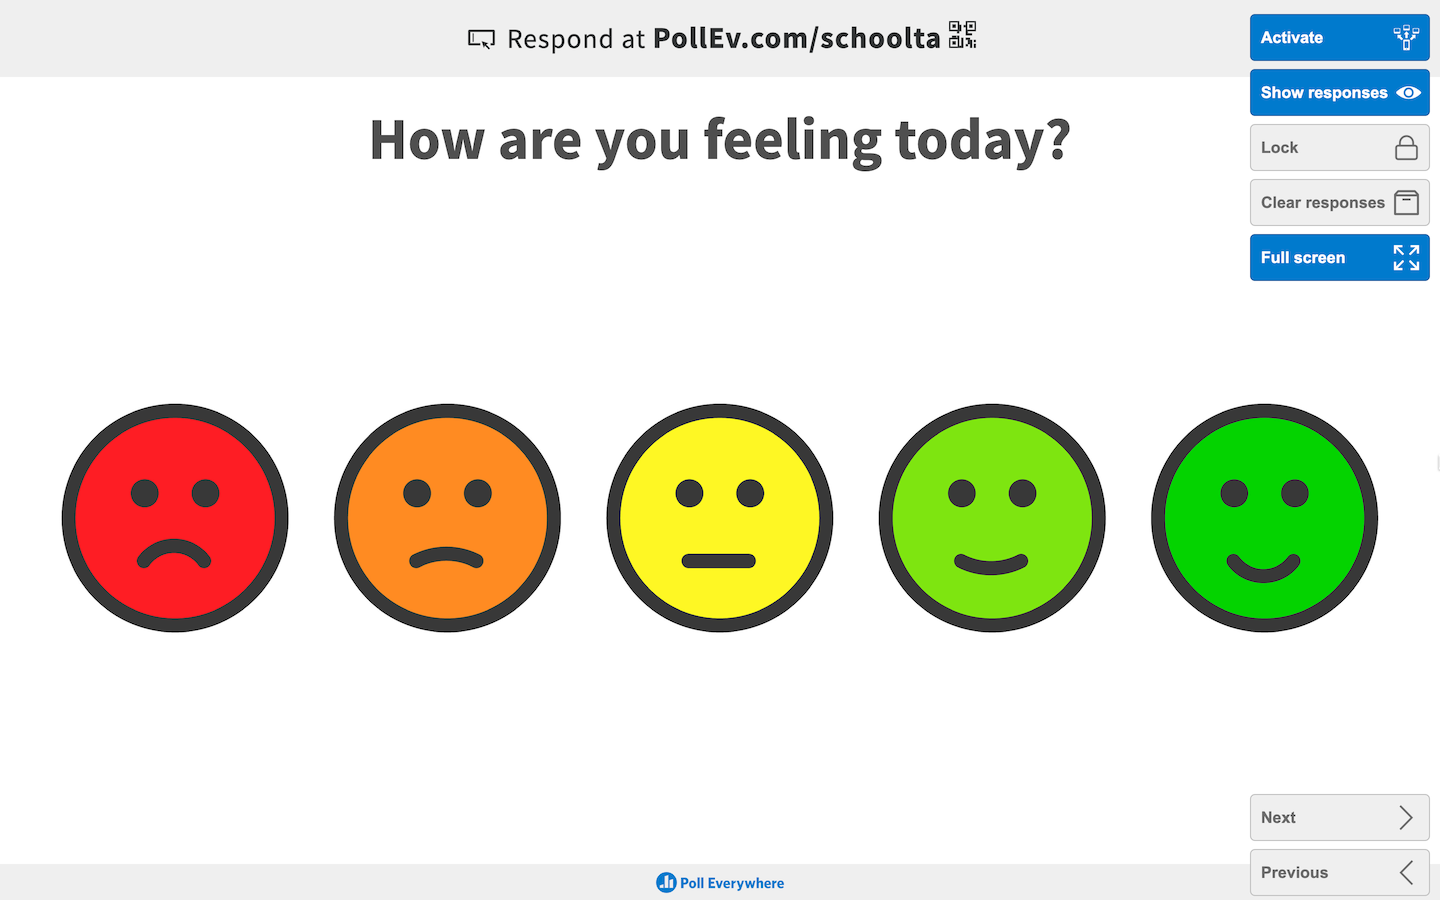 'How are you feeling today?' clickable image activity in full screen